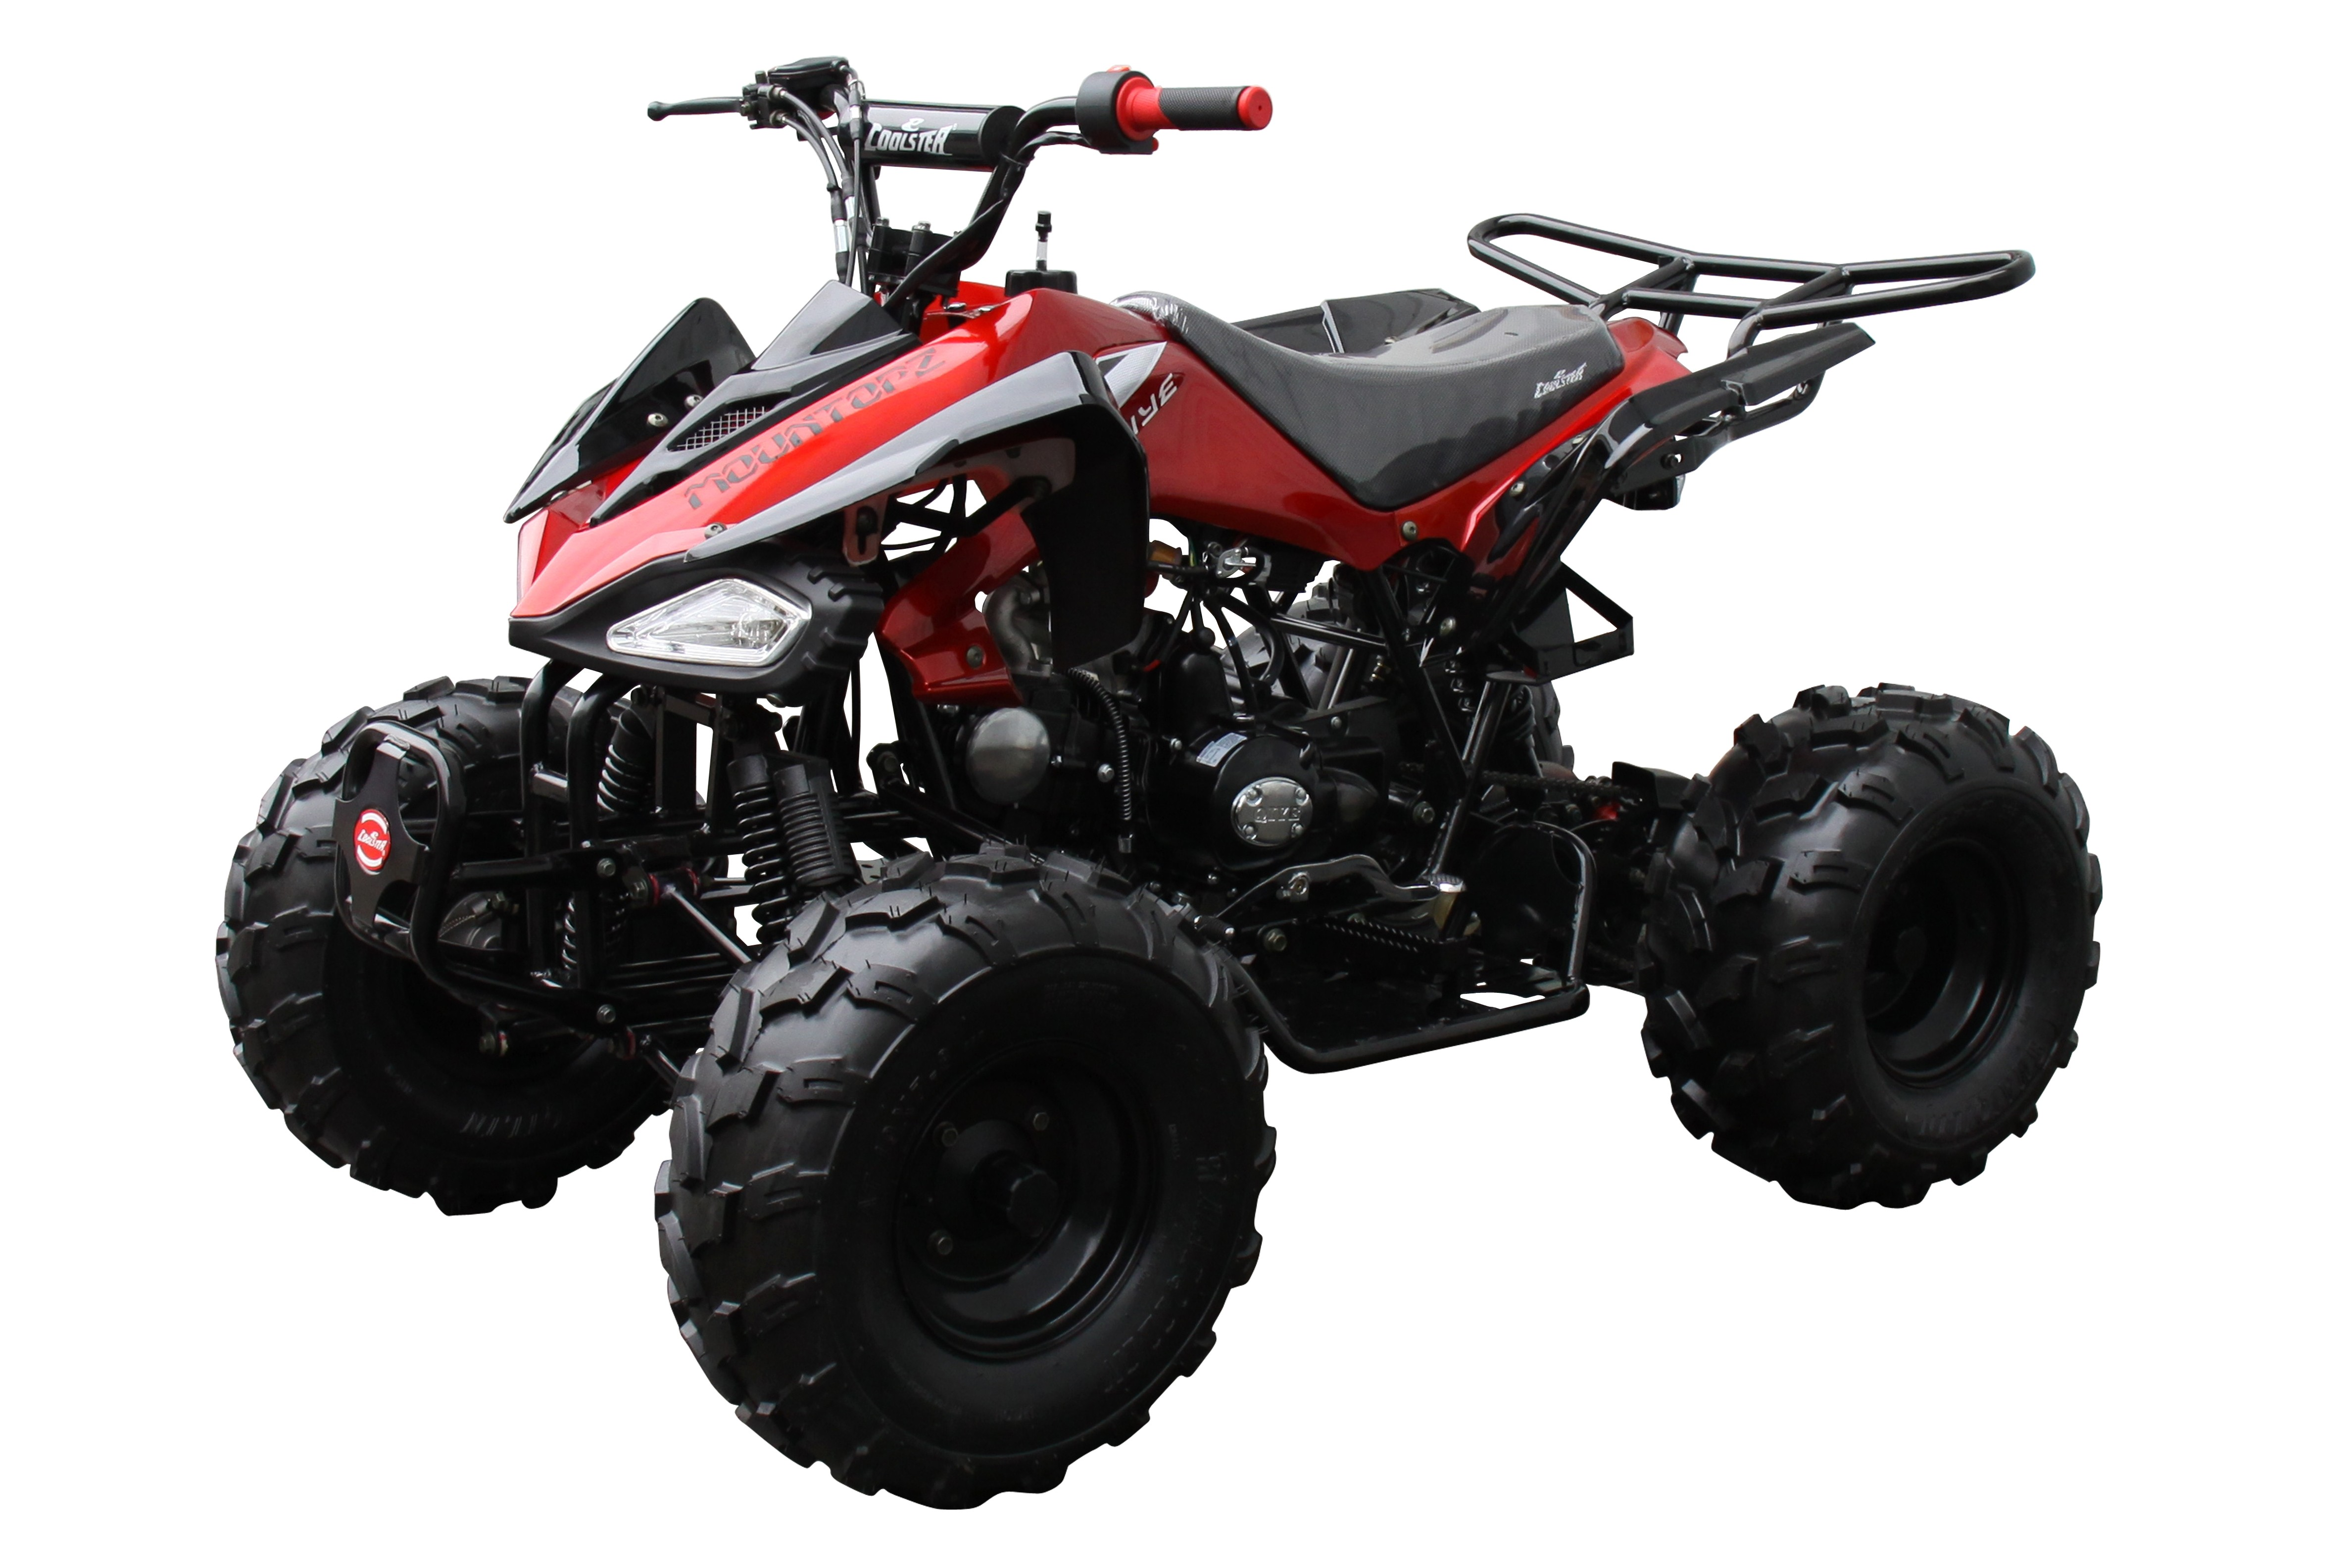 Coolster 125cc RacerPro Automatic ATV Red ...